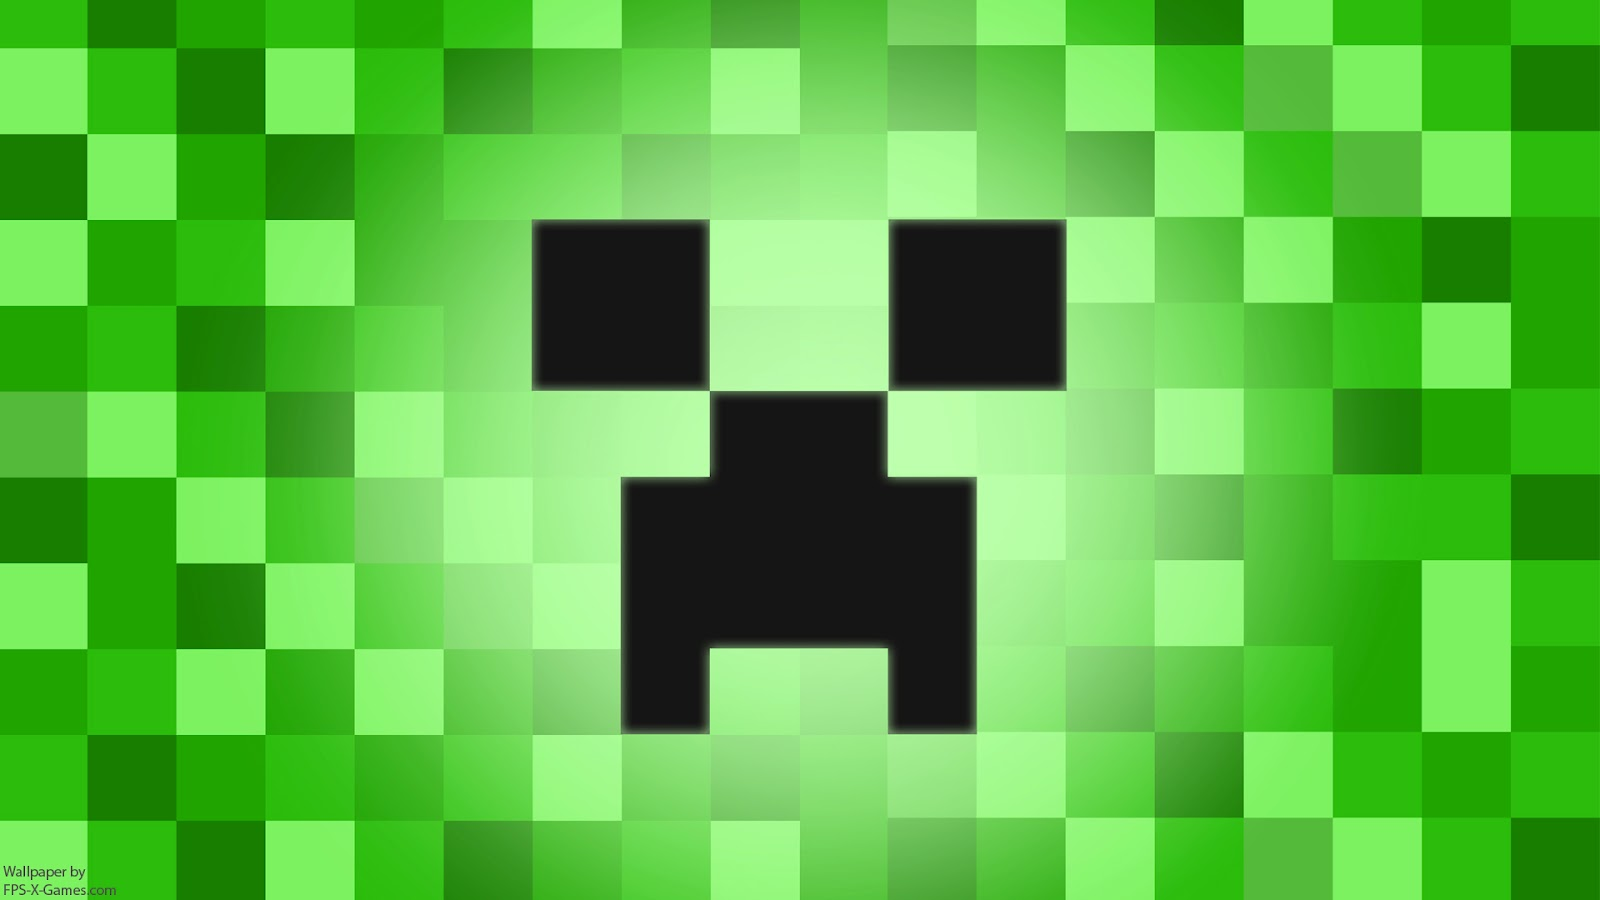 FREE Minecraft Creeper MOB Desktop Wallpaper ~ FPSX Games: FREE Minecraft Creeper MOB Desktop Wallpaper Ello, here is another Minecraft desktop wallpaper I ...